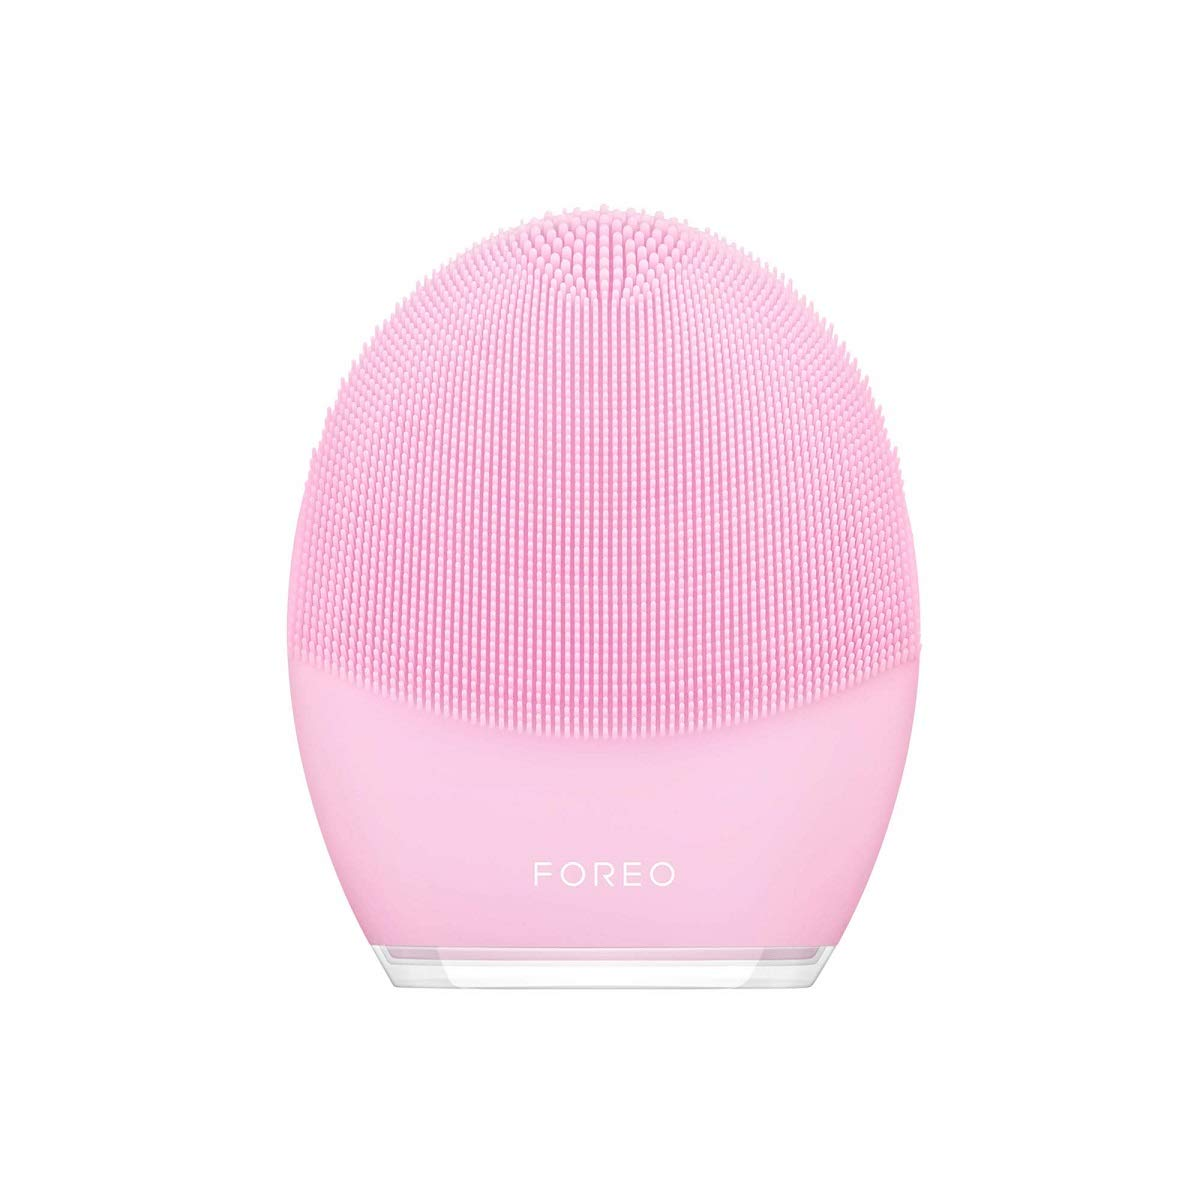 FOREO LUNA 3 for Normal Skin, Smart Facial Cleansing and Firming Massage Brush for Spa at Home